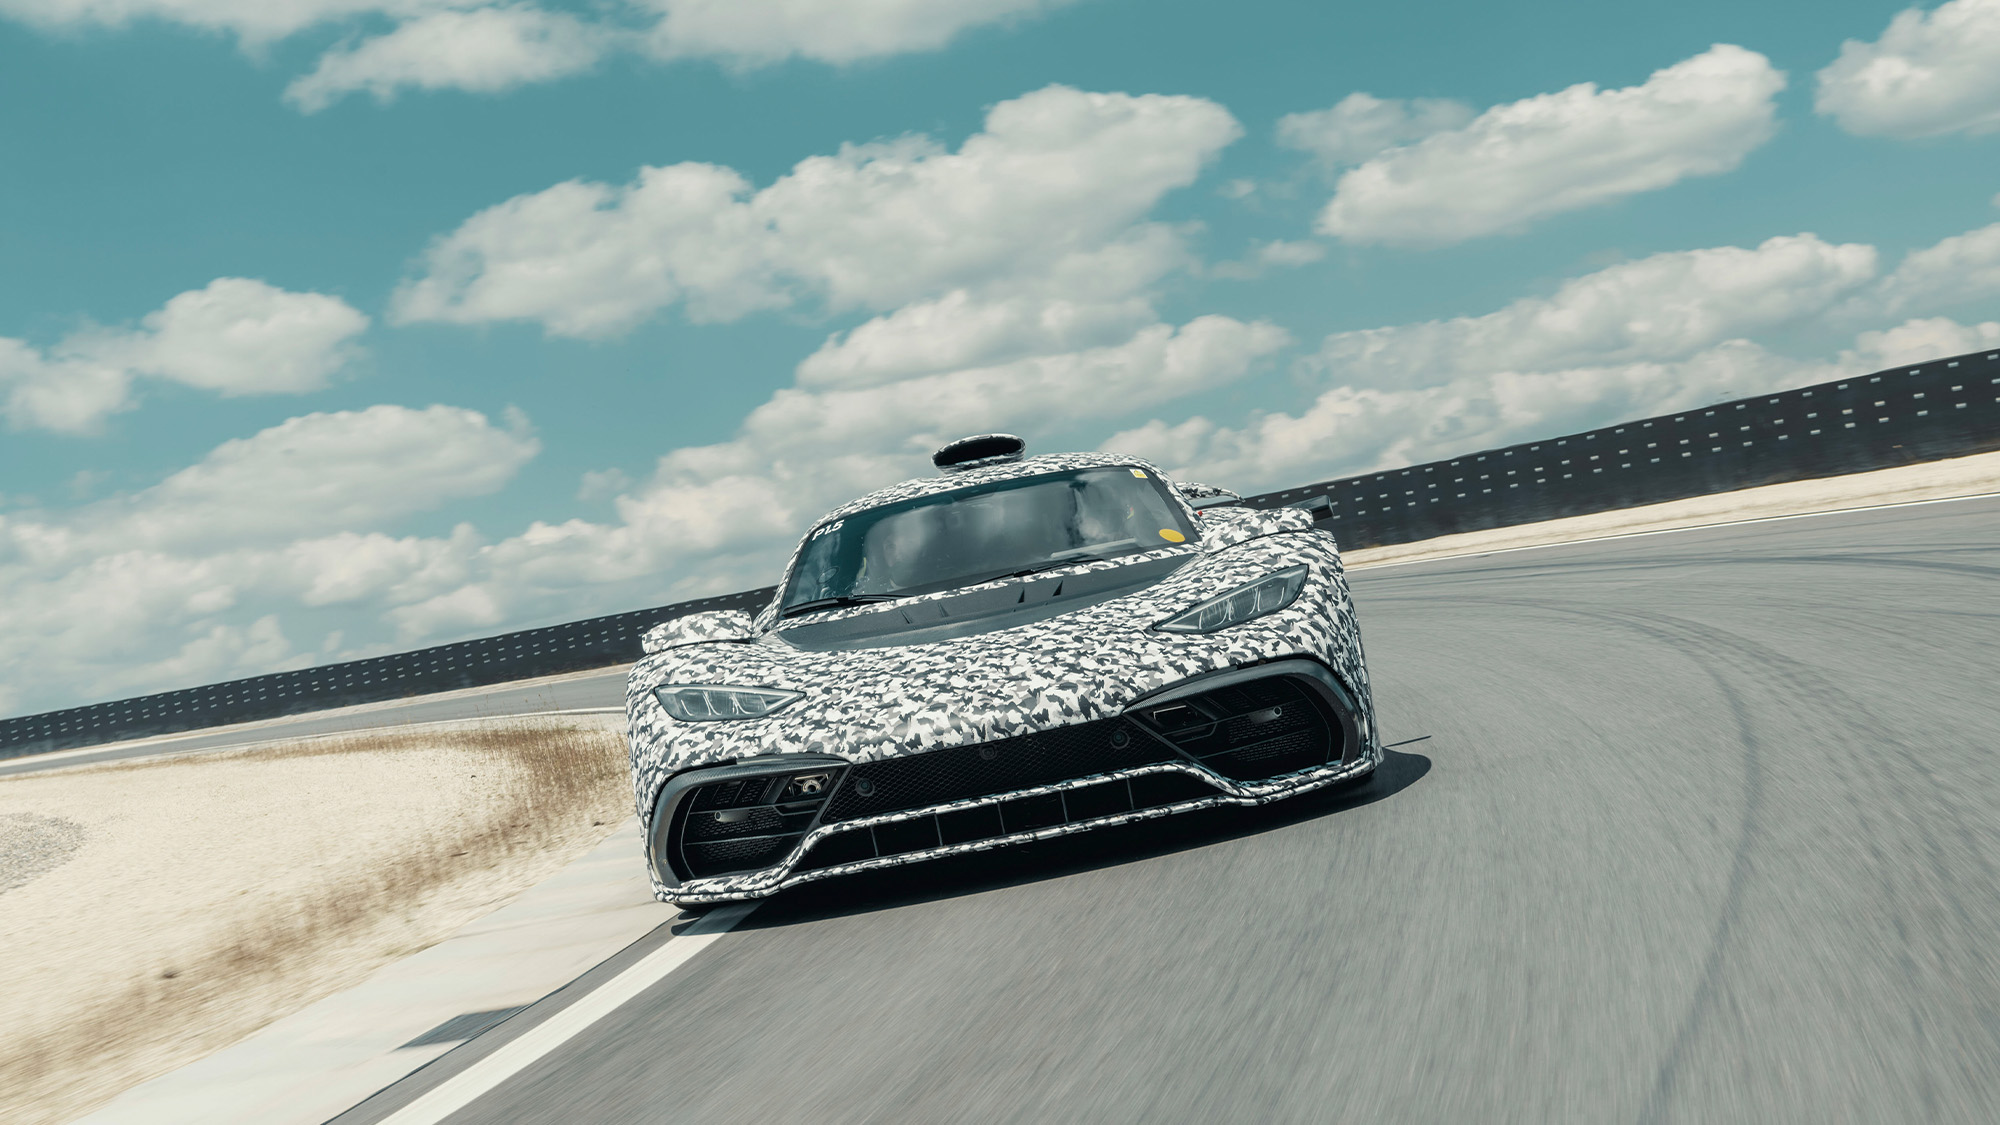 Mercedes AMG Project One hypercar in pre-production testing in 2020